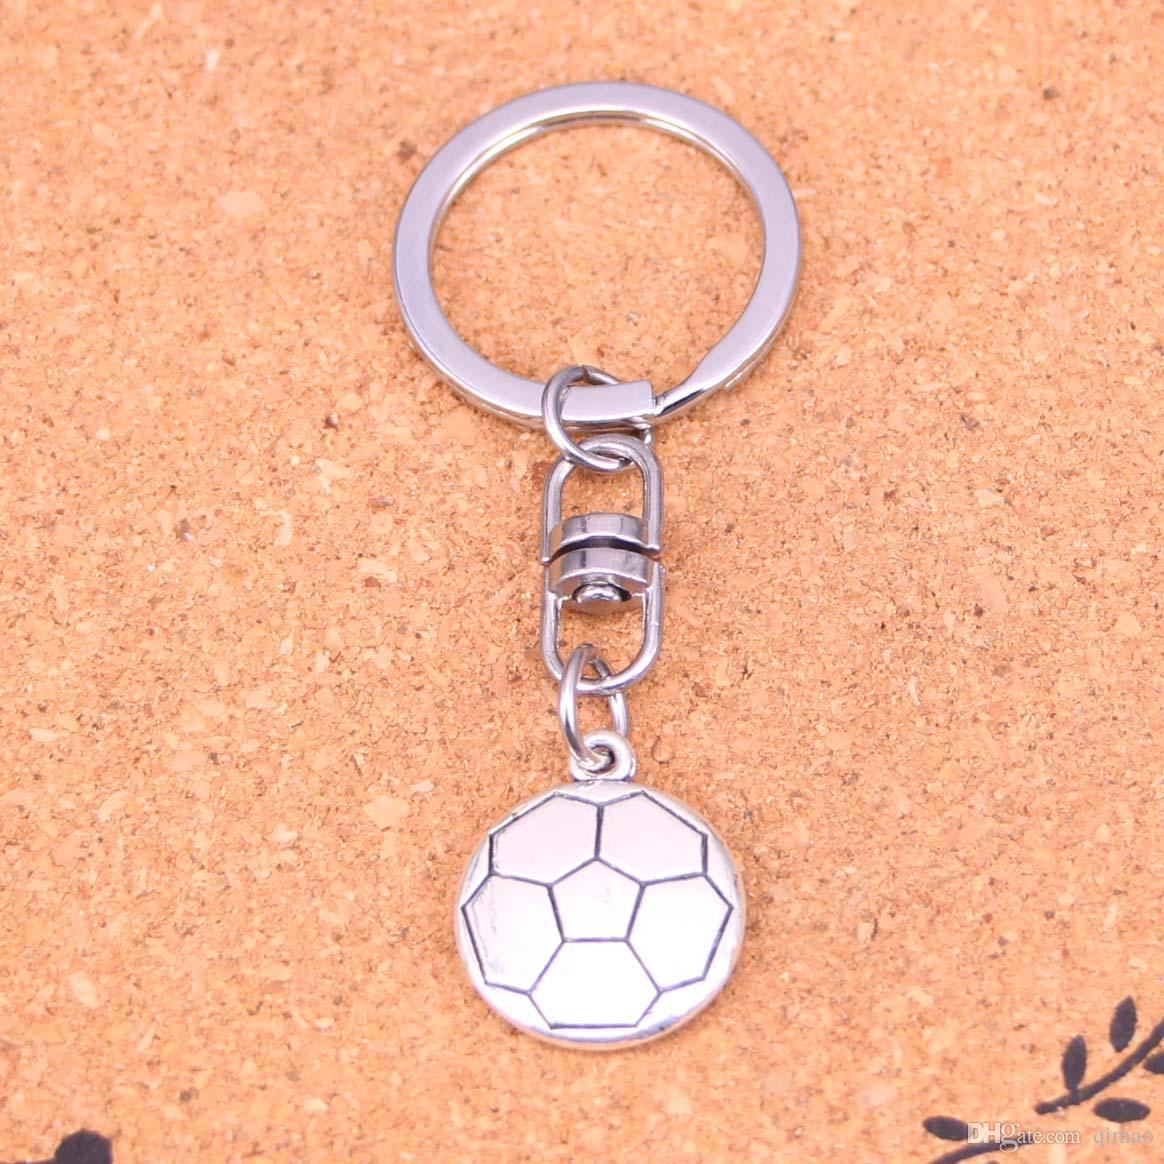 a78b32007ed0f New Fashion Double Sided Football Keychains Vintage Antique Silver Plated  Keyholder Fashion Solid Pendant Keyring Gift Keychain Charm Online with ...